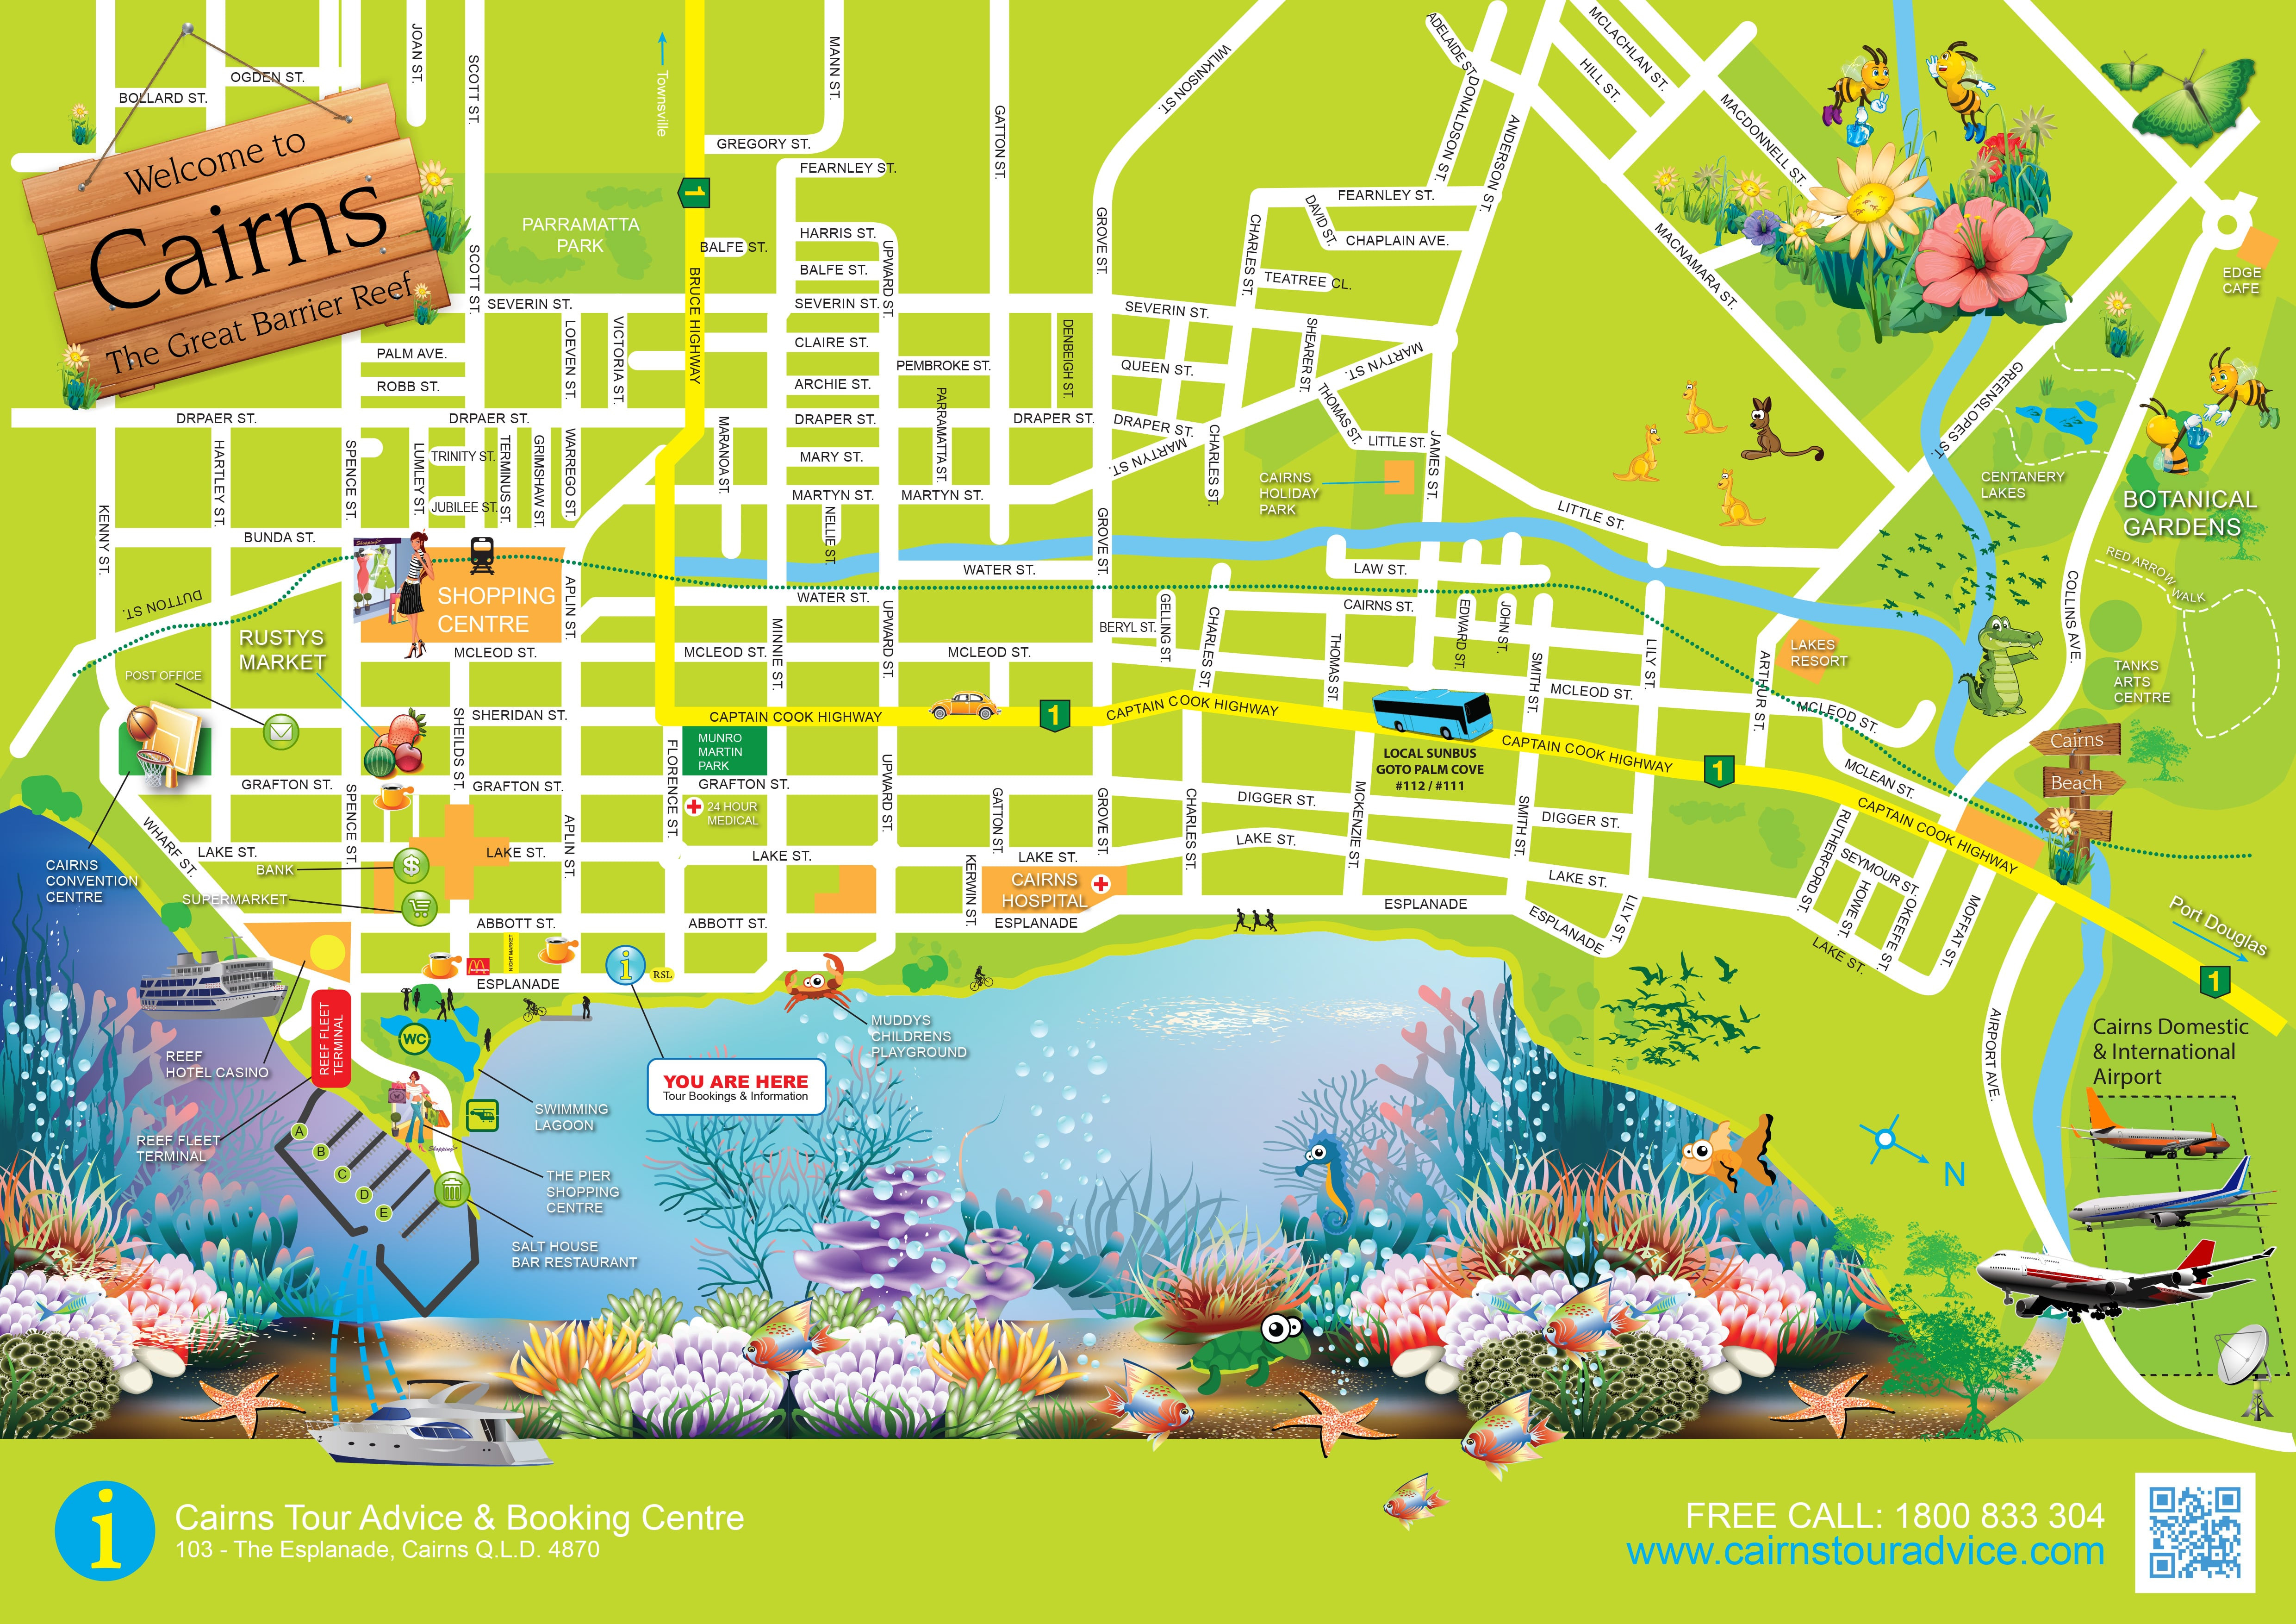 Printable Map Brisbane Cbd Lovely Free Cairns City Tourist Map Download Print And Cannes Australia